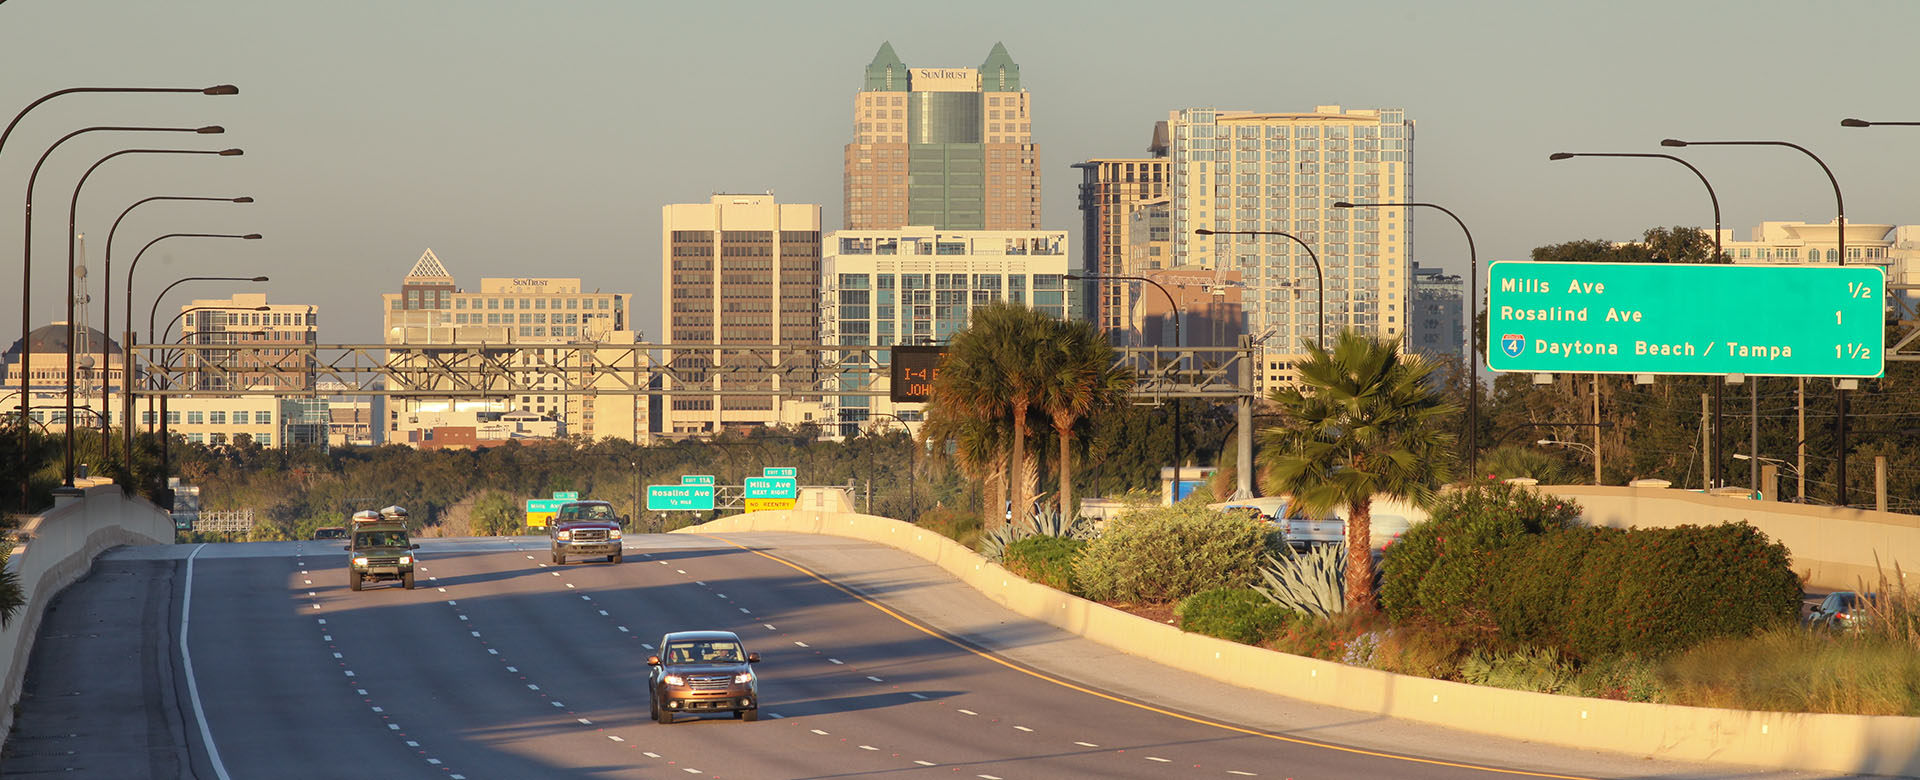 Central Florida Expressway toll road 408 near downtown Orlando. Sign for exits to Mills Avenue, Rosalind Avenue, and Interstate 4 to Daytona Beach/Tampa